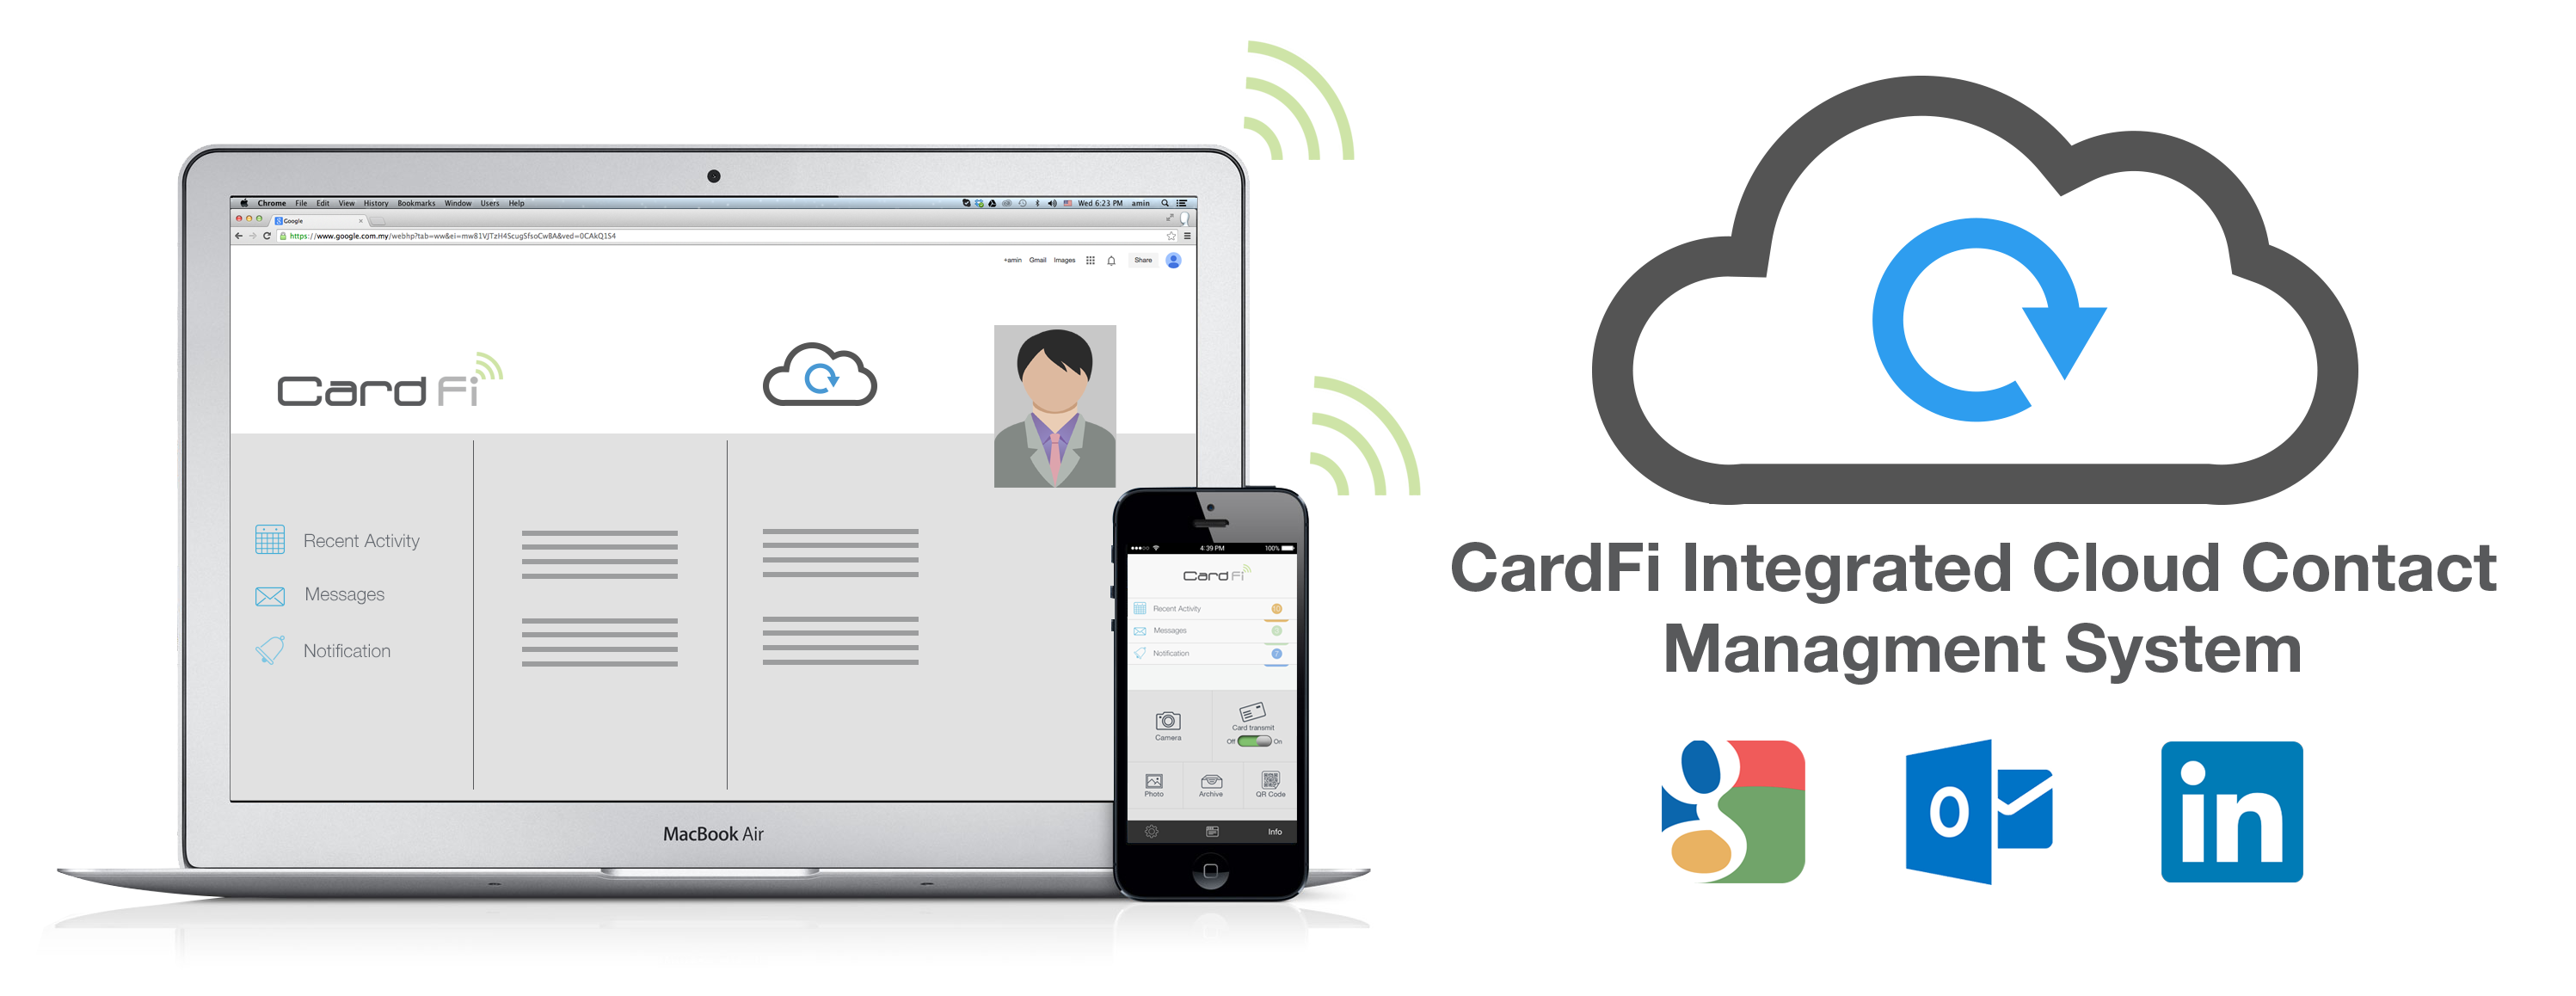 cardfi world s first ibeacon business card